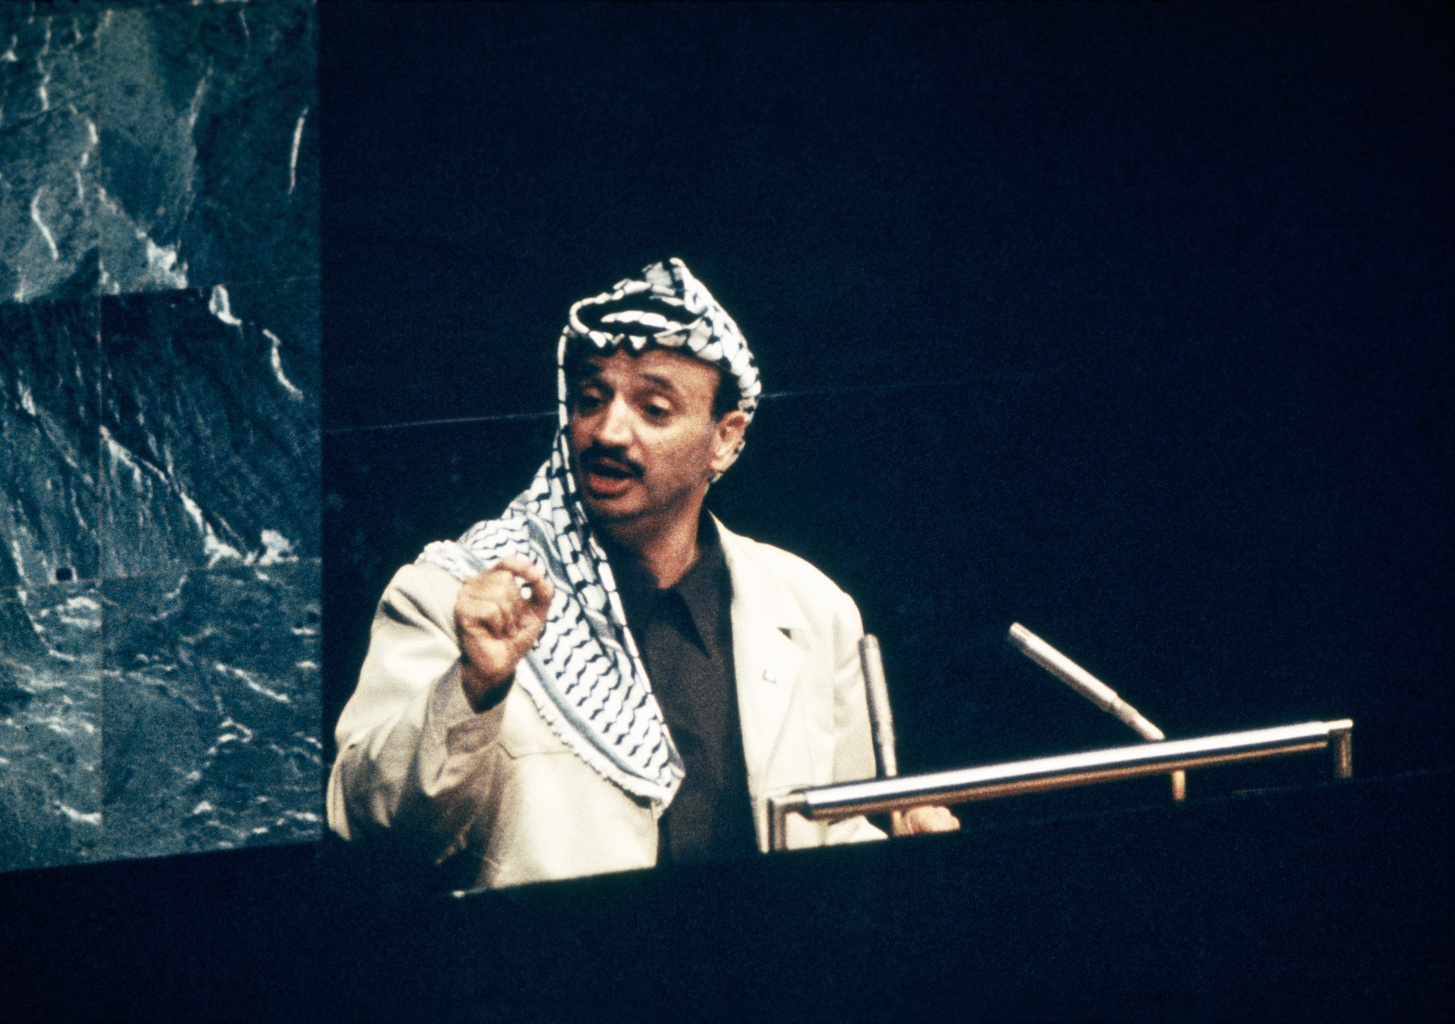 Portrait Of Yasser Arafat Speaking At The United Nations In New York On November 12Nd 1974